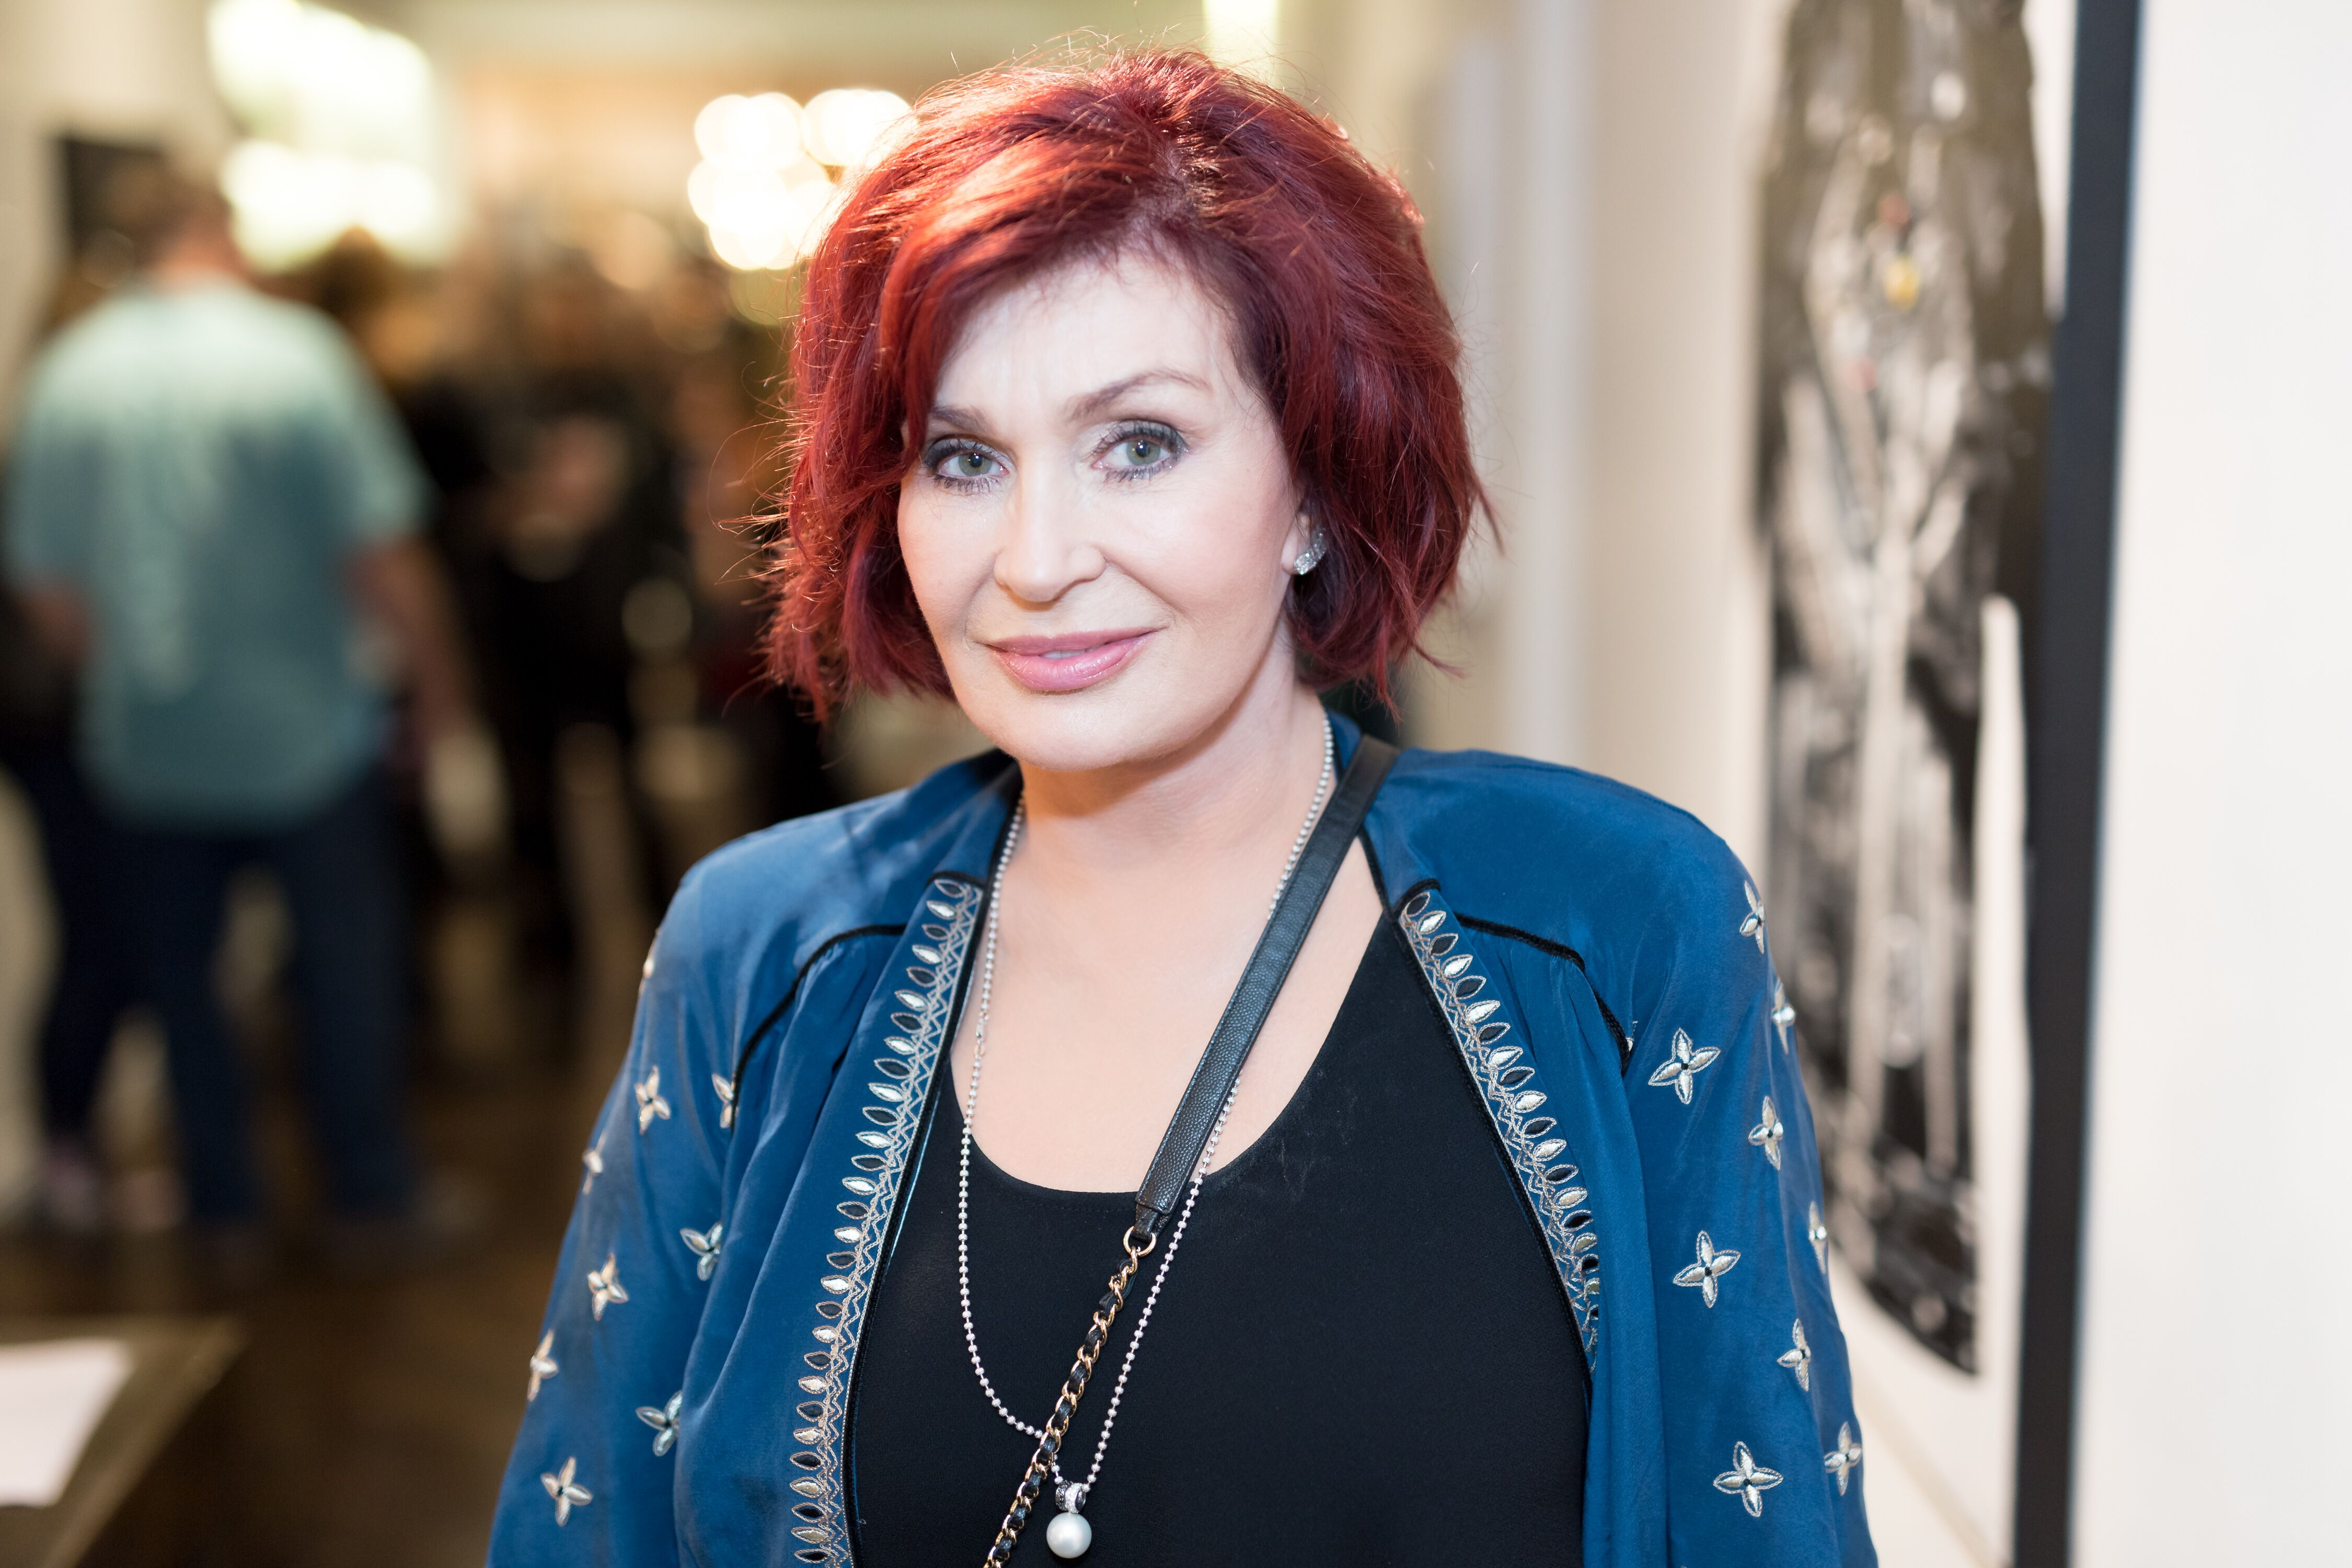 Sharon Osbourne attends the Billy Morrison - Aude Somnia Solo Exhibition at Elisabeth Weinstock on September 28, 2017 in Los Angeles, California | Photo: Getty Images